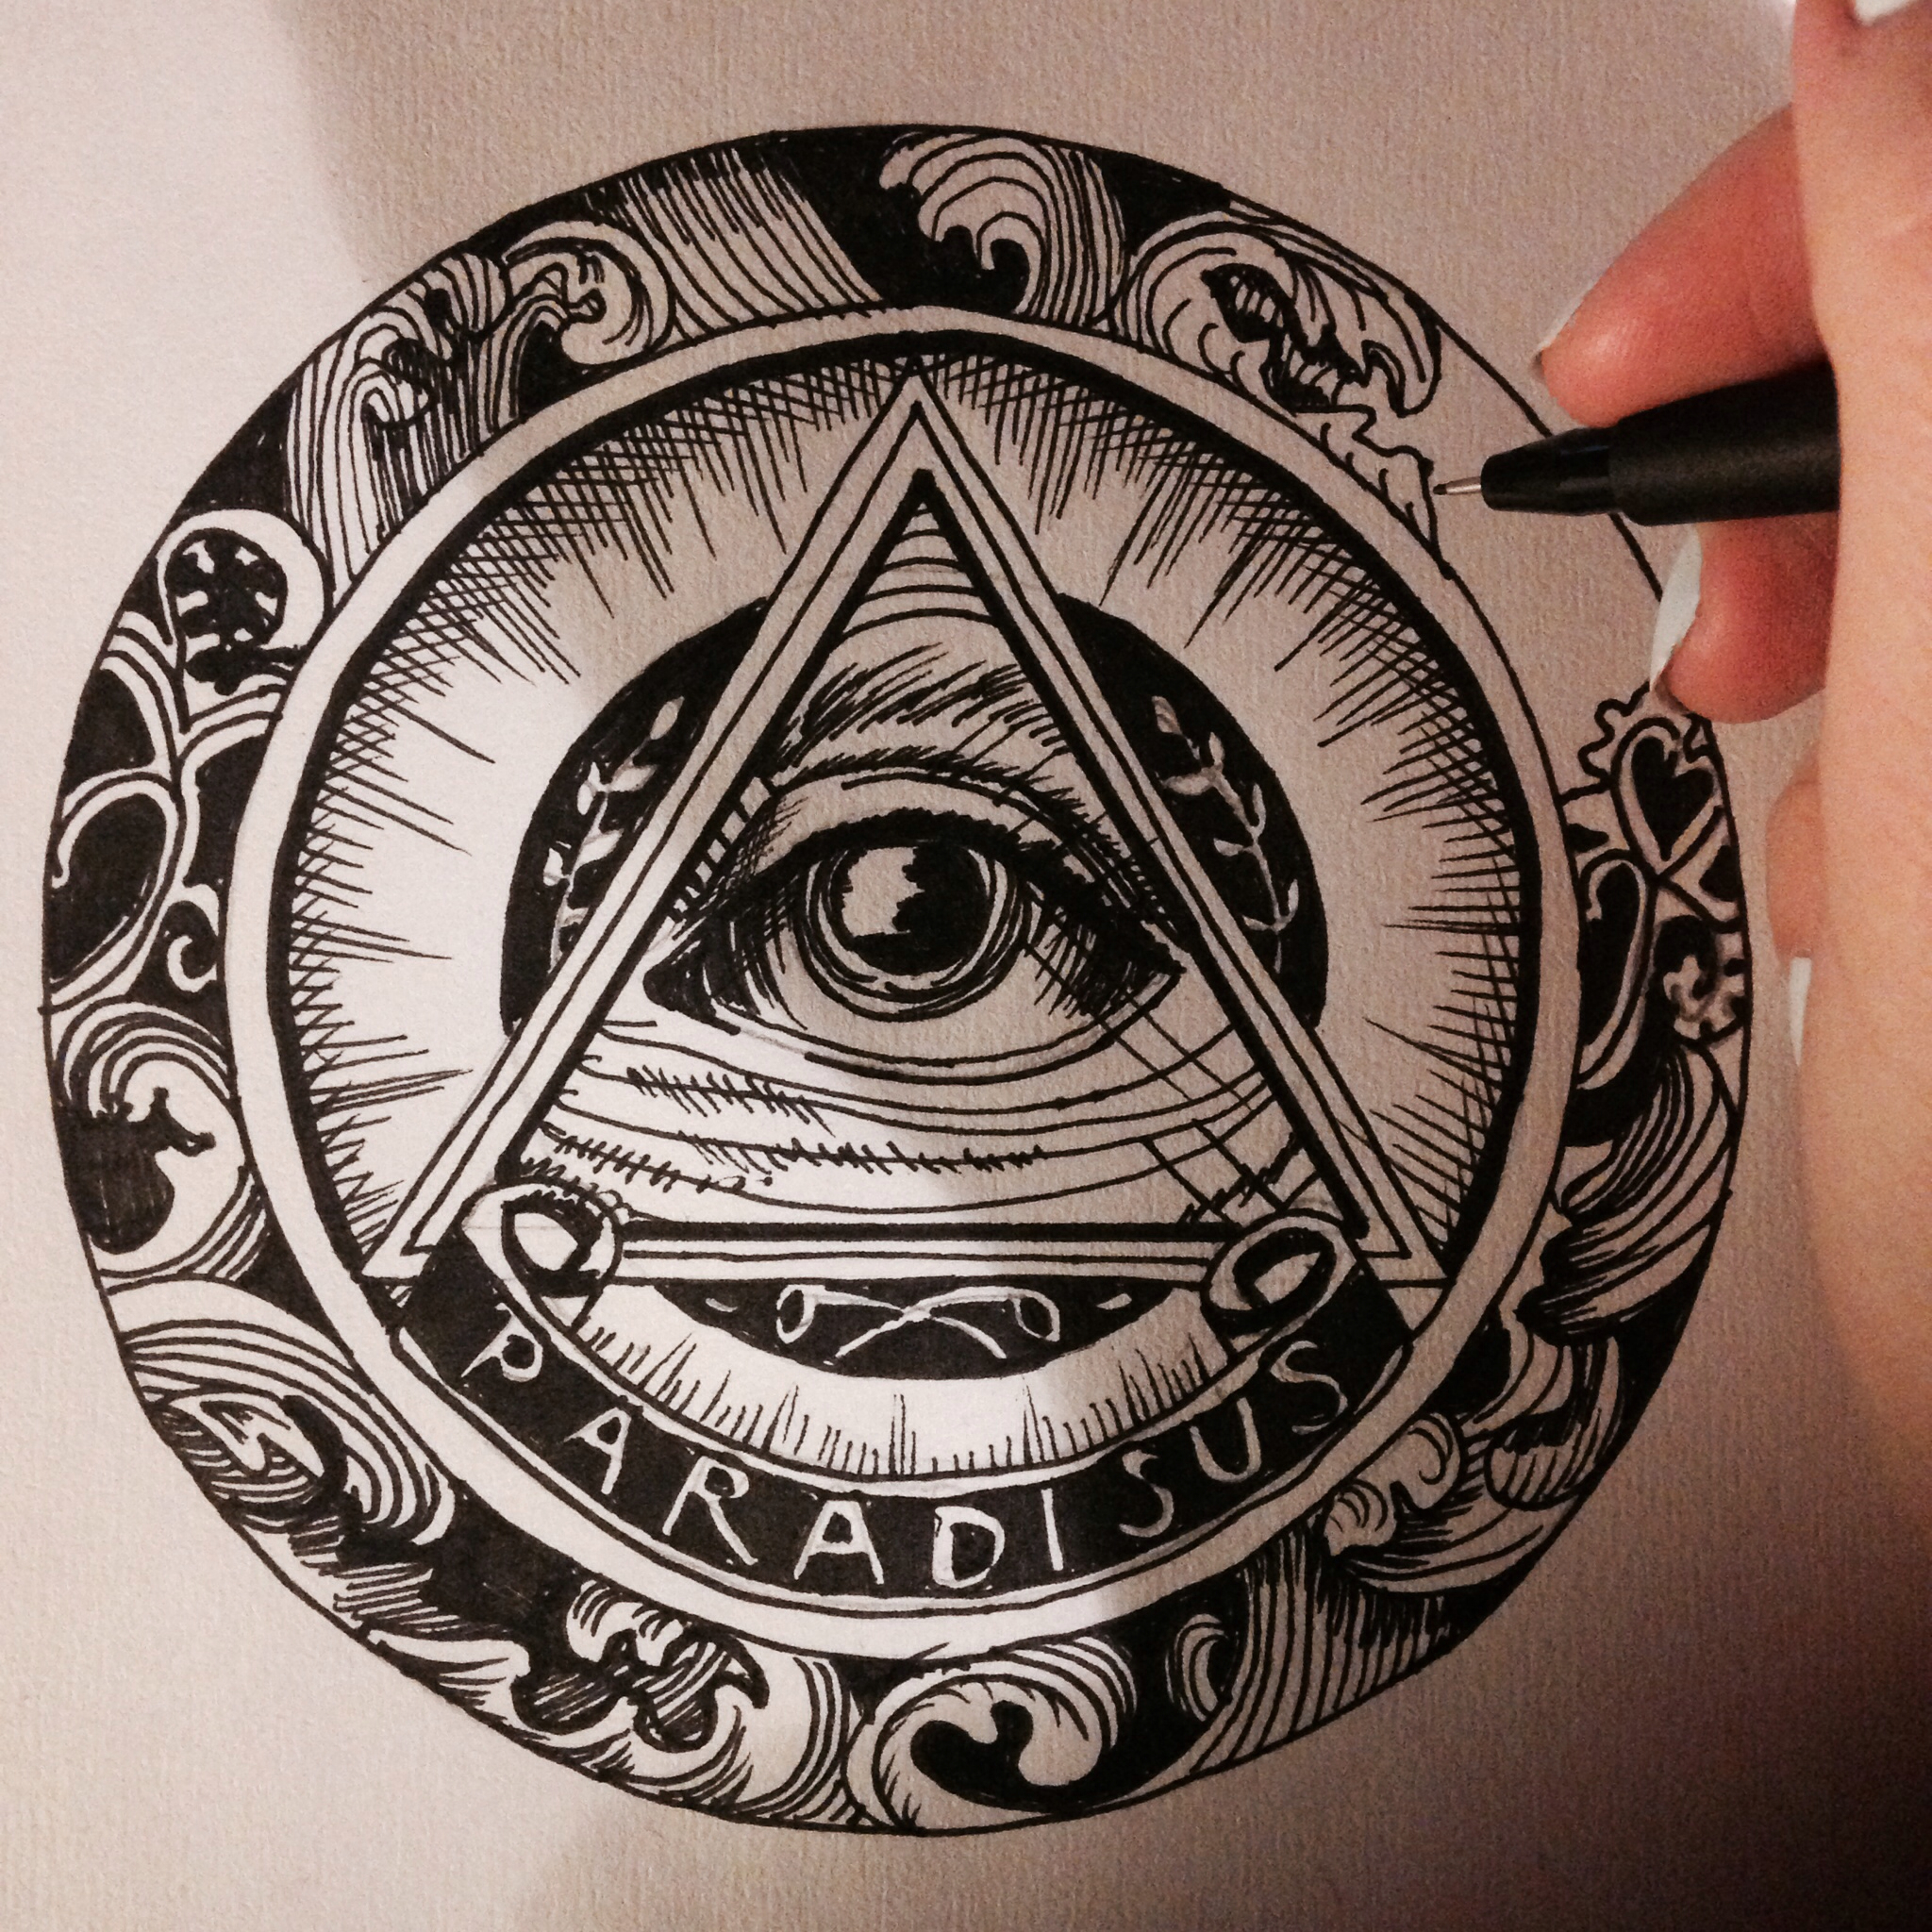 Drawn pyramid all seeing eye Seeing draw  a All